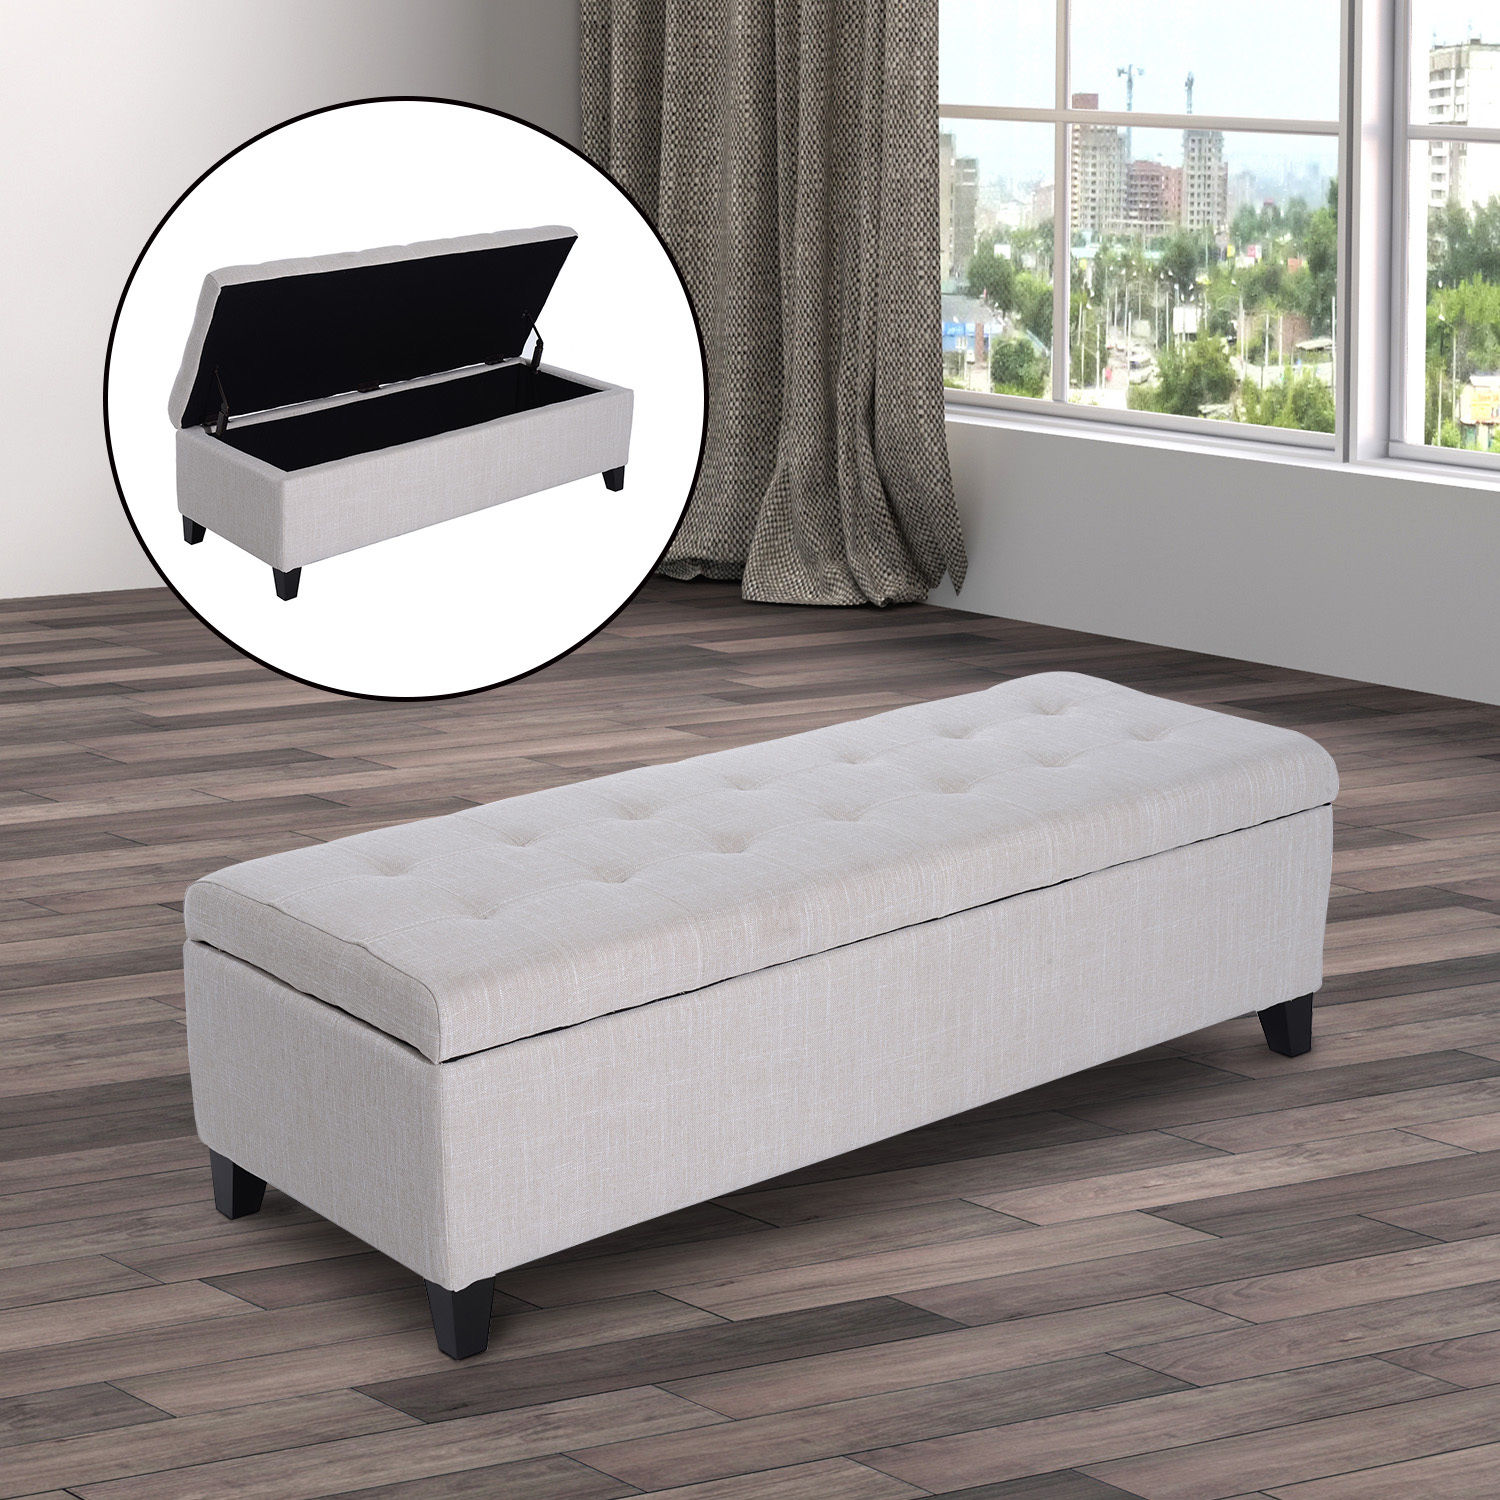 51 Quot Large Tufted Top Storage Bench Ottoman Footrest Stool